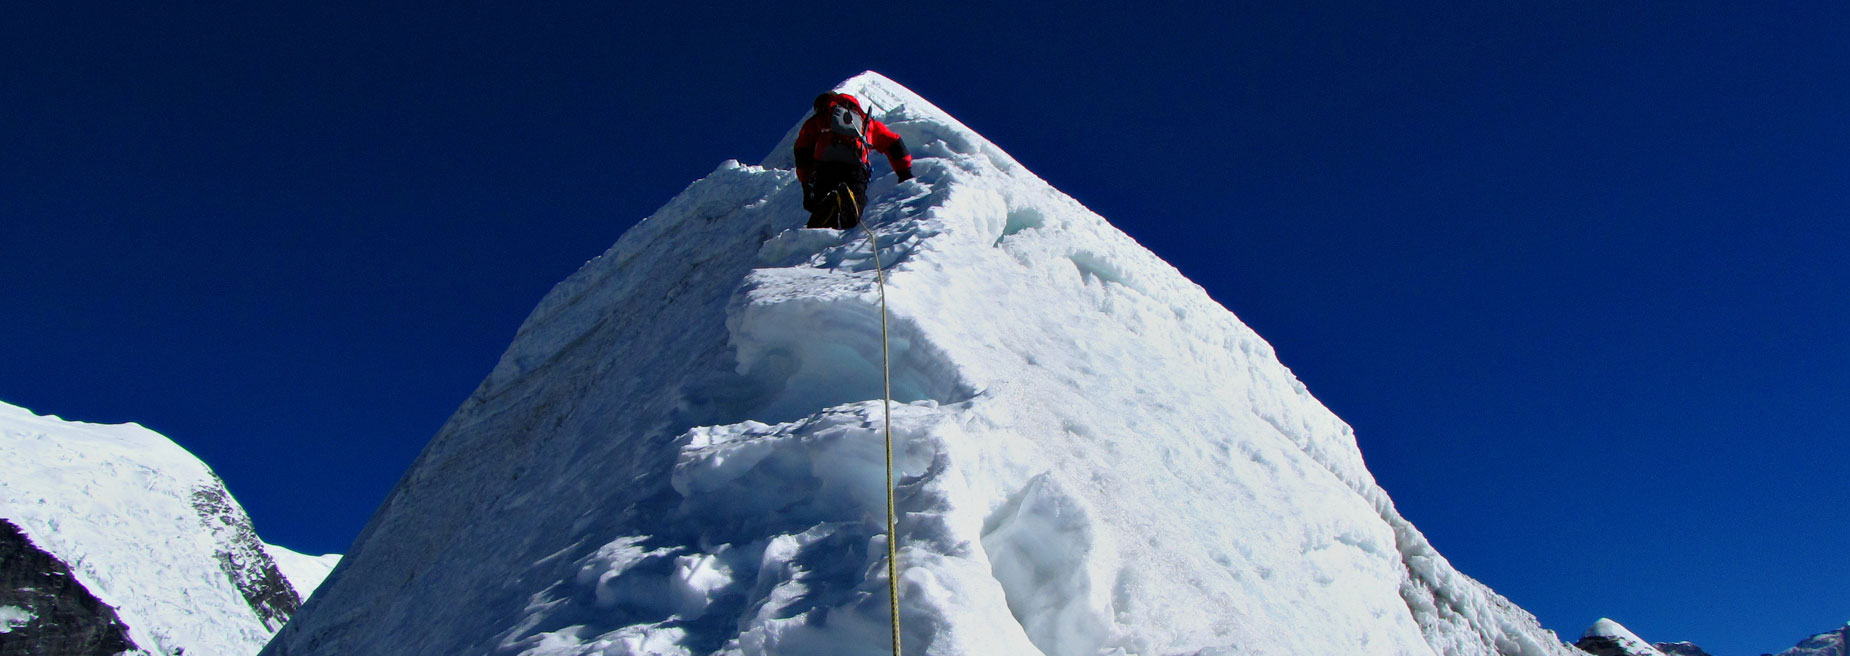 Mountaineering - Peak Climbing and Expedition